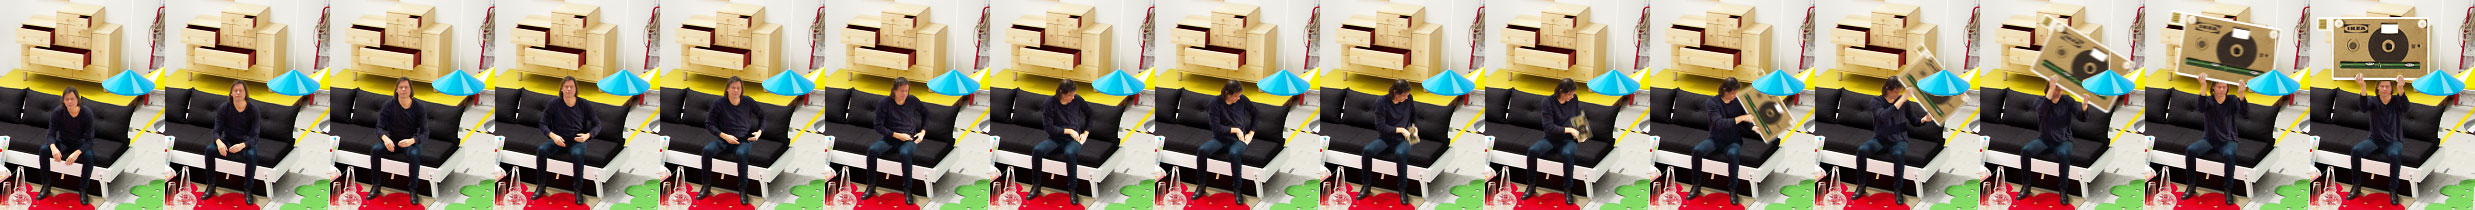 Experience IKEA PS 2012 in real homes!